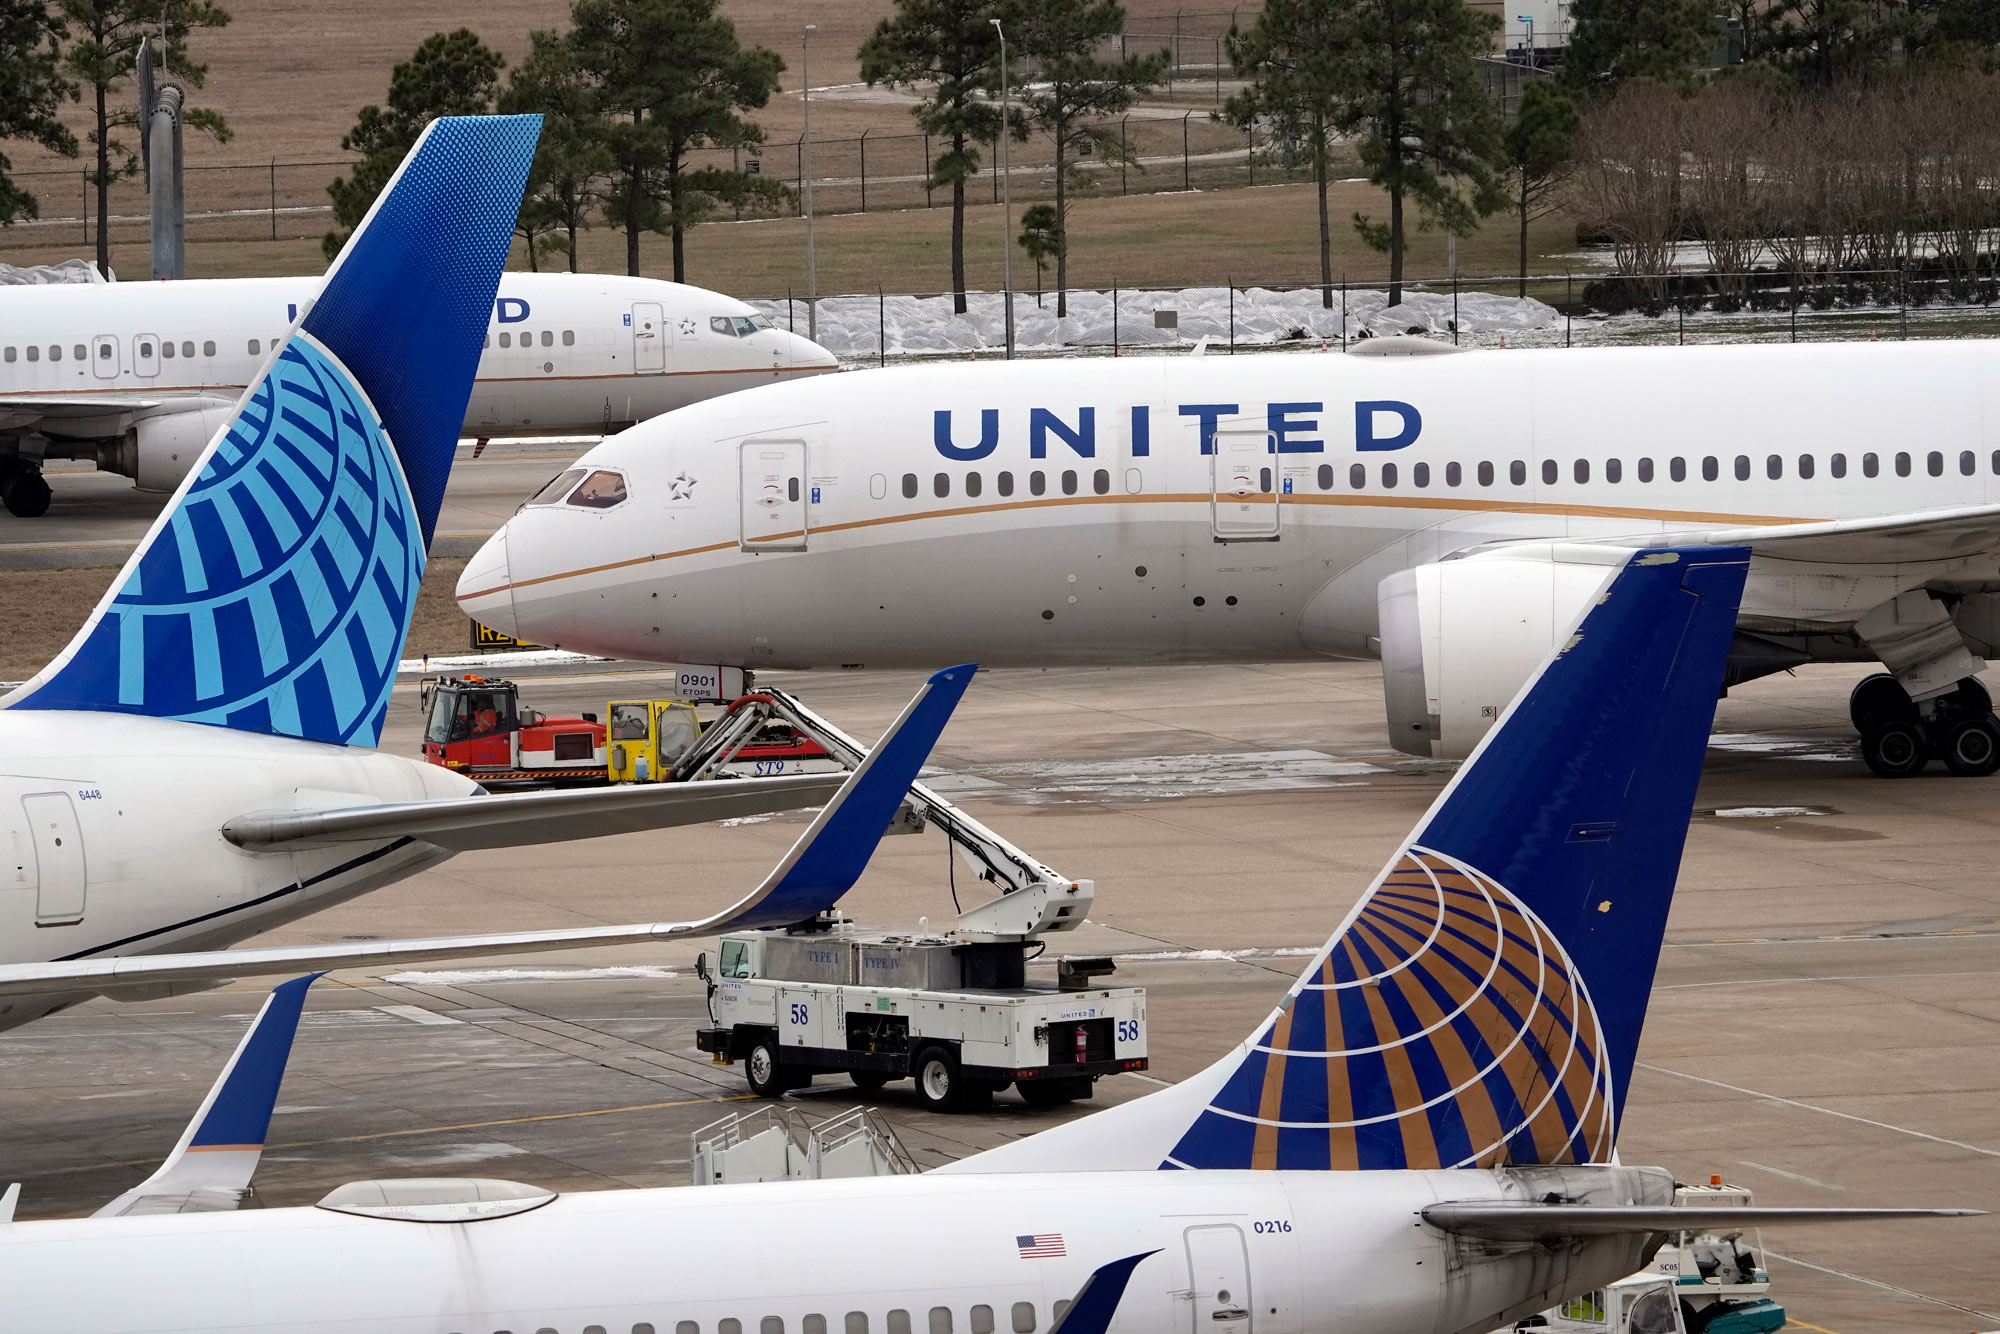 A United Airlines jet is towed at George Bush Intercontinental Airport on February 16 in Houston, Texas.